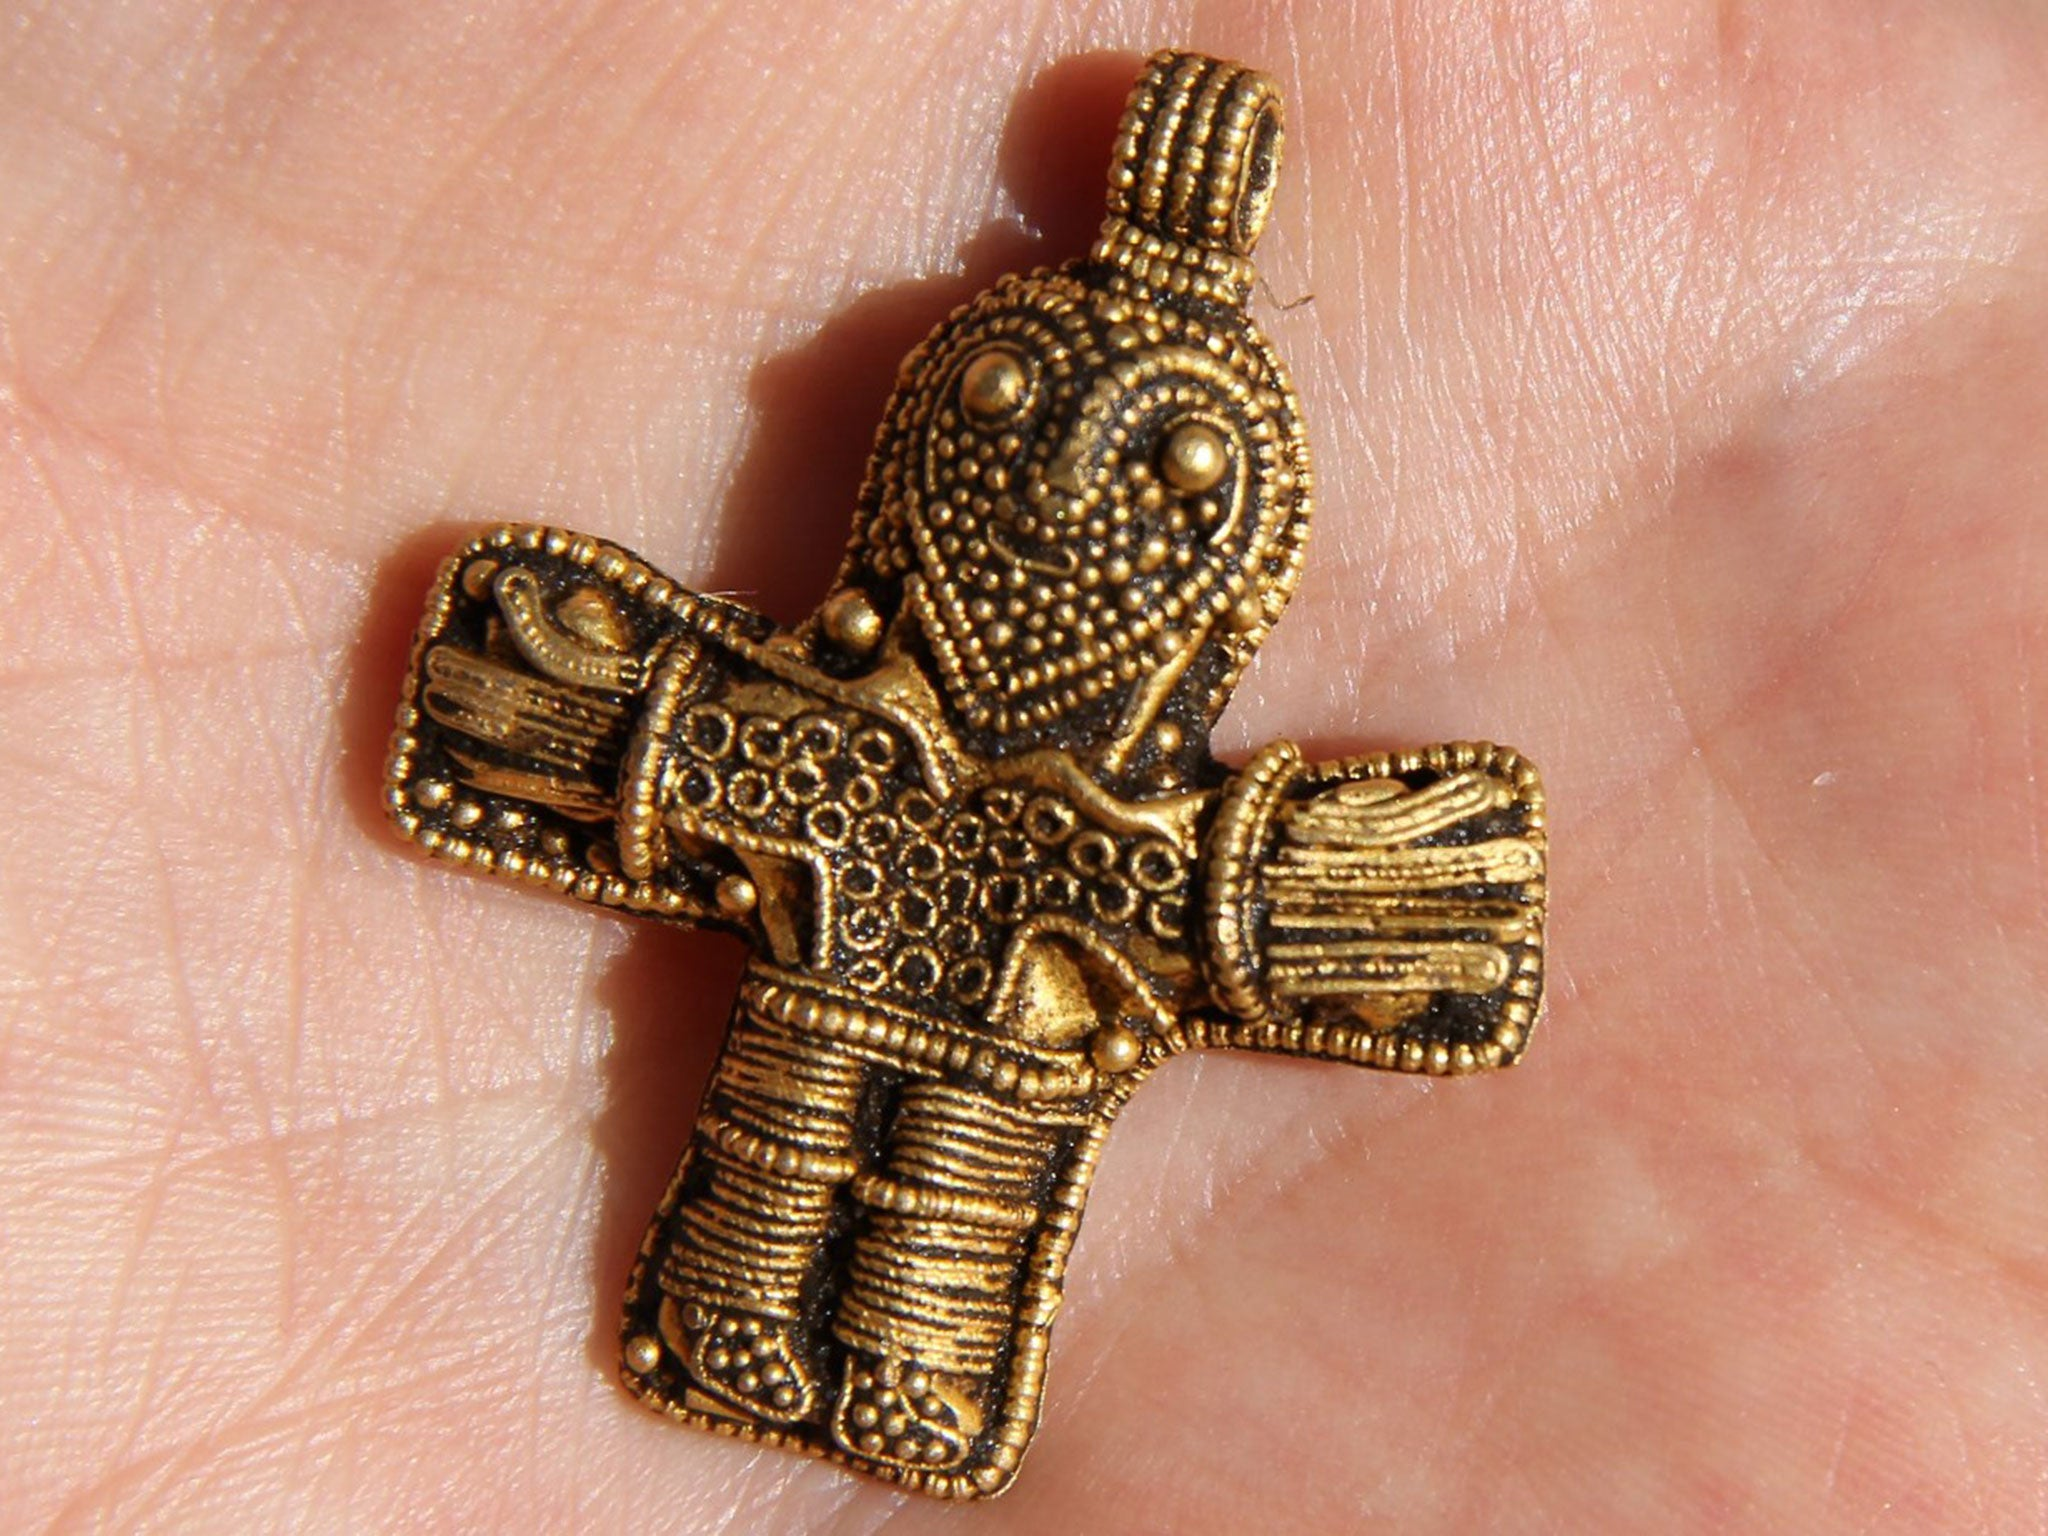 Amateur Metal Detector Finds Crucifix That May Change The